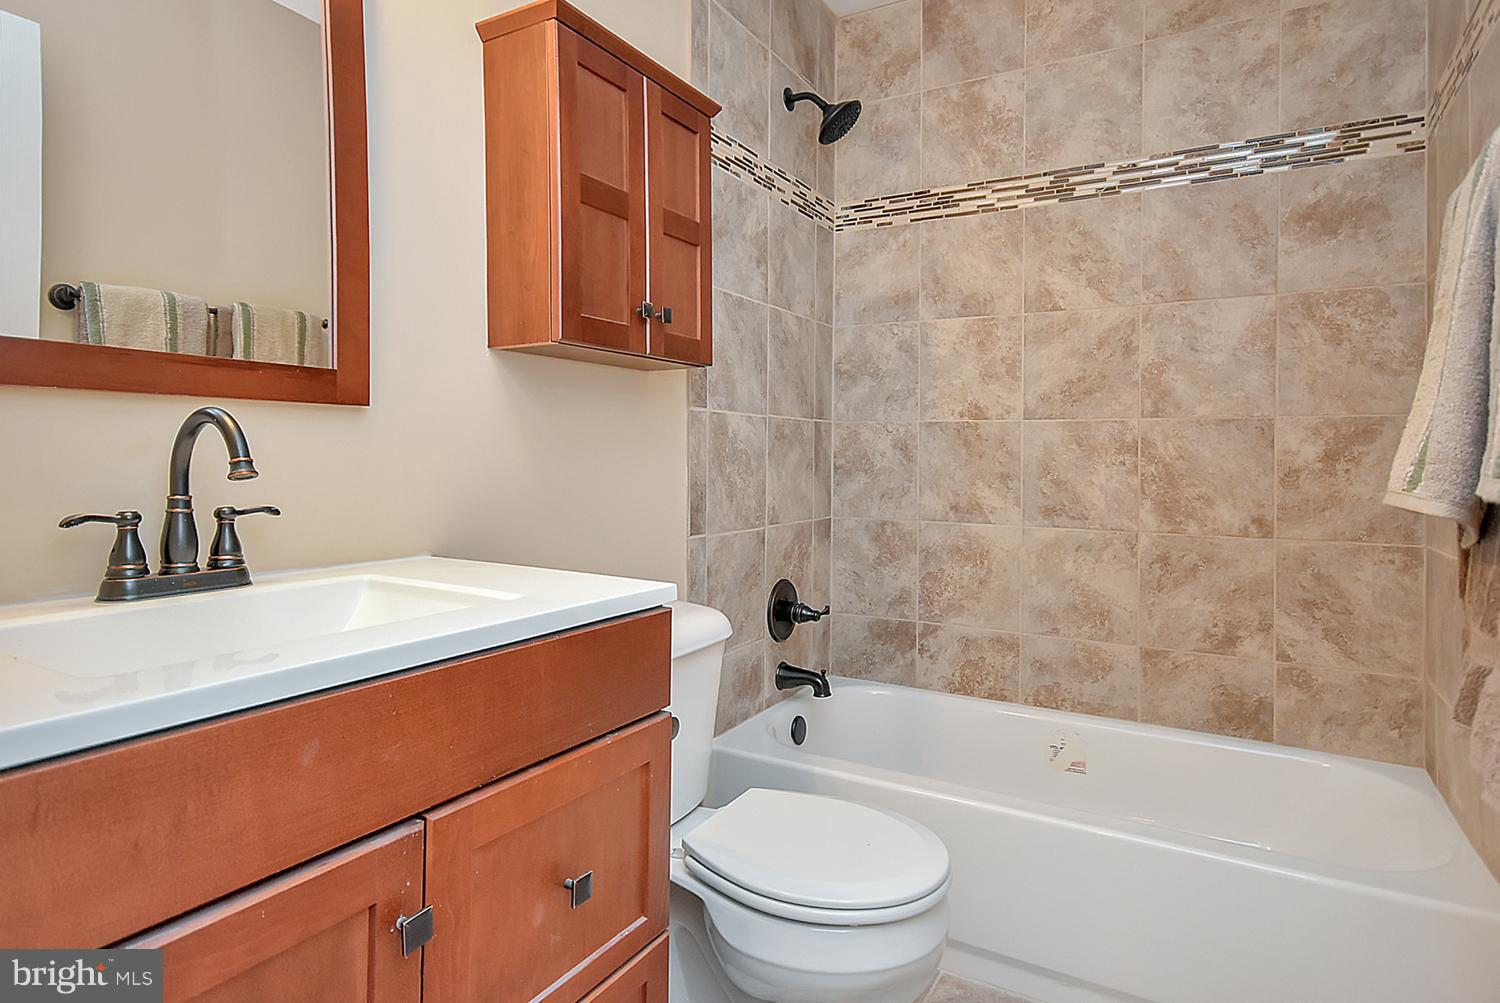 2815 KELLY COURT Waldorf MD 20603 & 2815 KELLY COURT Waldorf MD 20603 MLS # 1002000652 | RE/MAX of ...